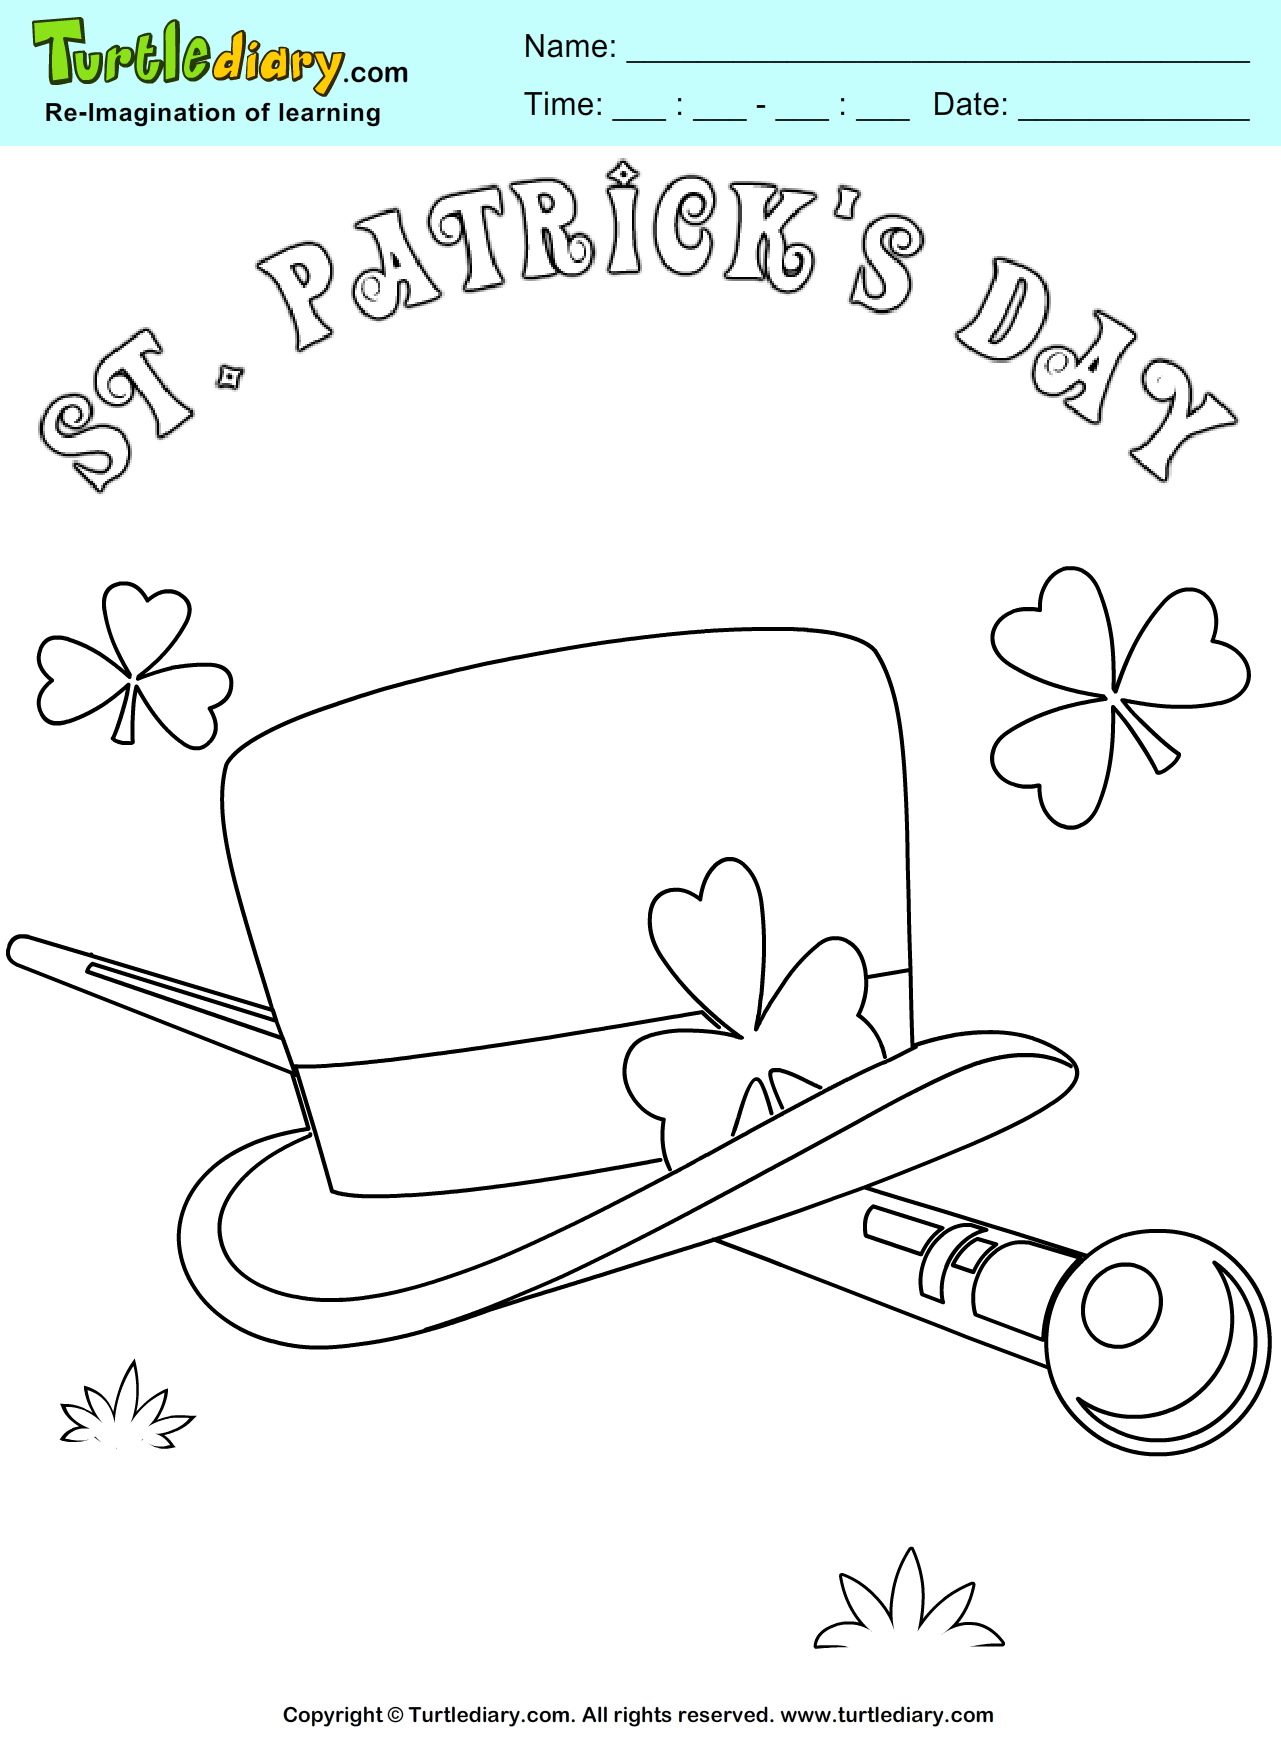 St Patrick Day Coloring Page Coloring Sheet Coloring Pages Coloring Sheets Coloring Sheets For Kids